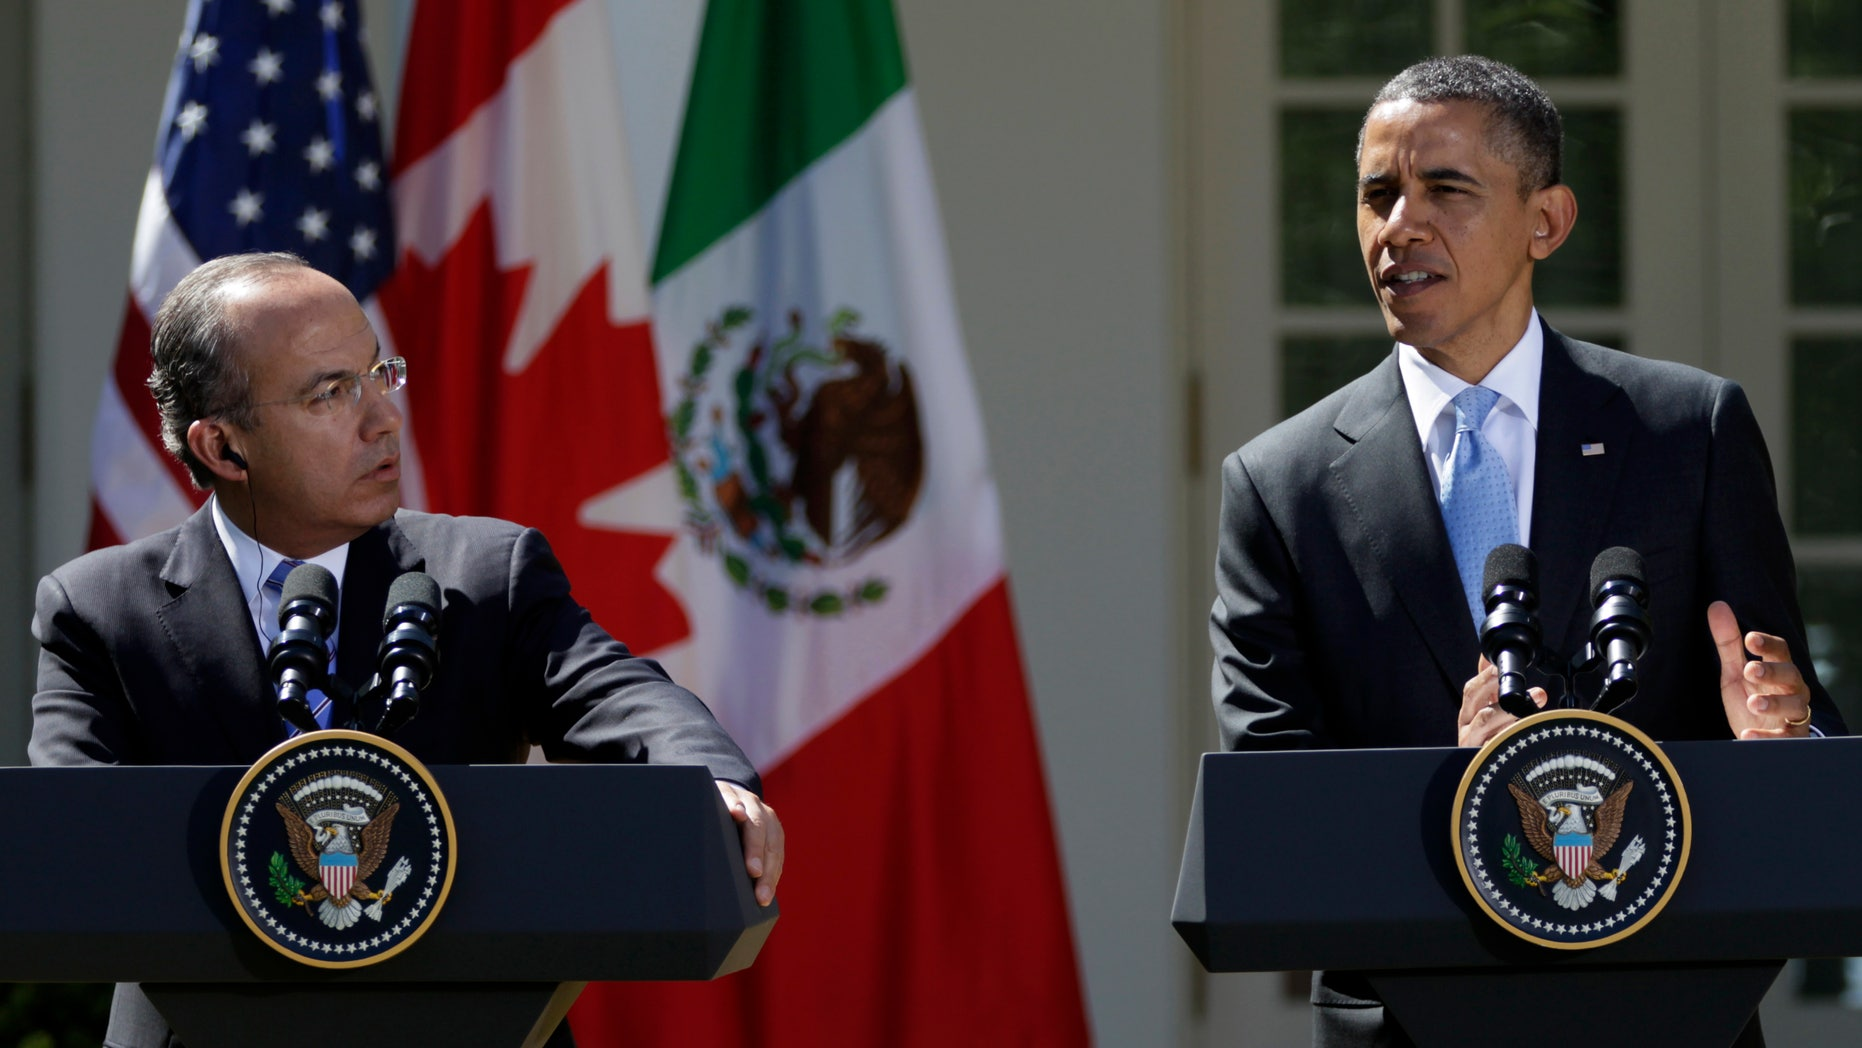 Mexican President Felipe Calderon watches at left as President Barack Obama speaks during a joint news conference with Canadian Prime Minister Stephen Harper, not seen, Monday, March 2, 2012, in the Rose Garden of the White House in Washington. (AP Photo/Carolyn Kaster)